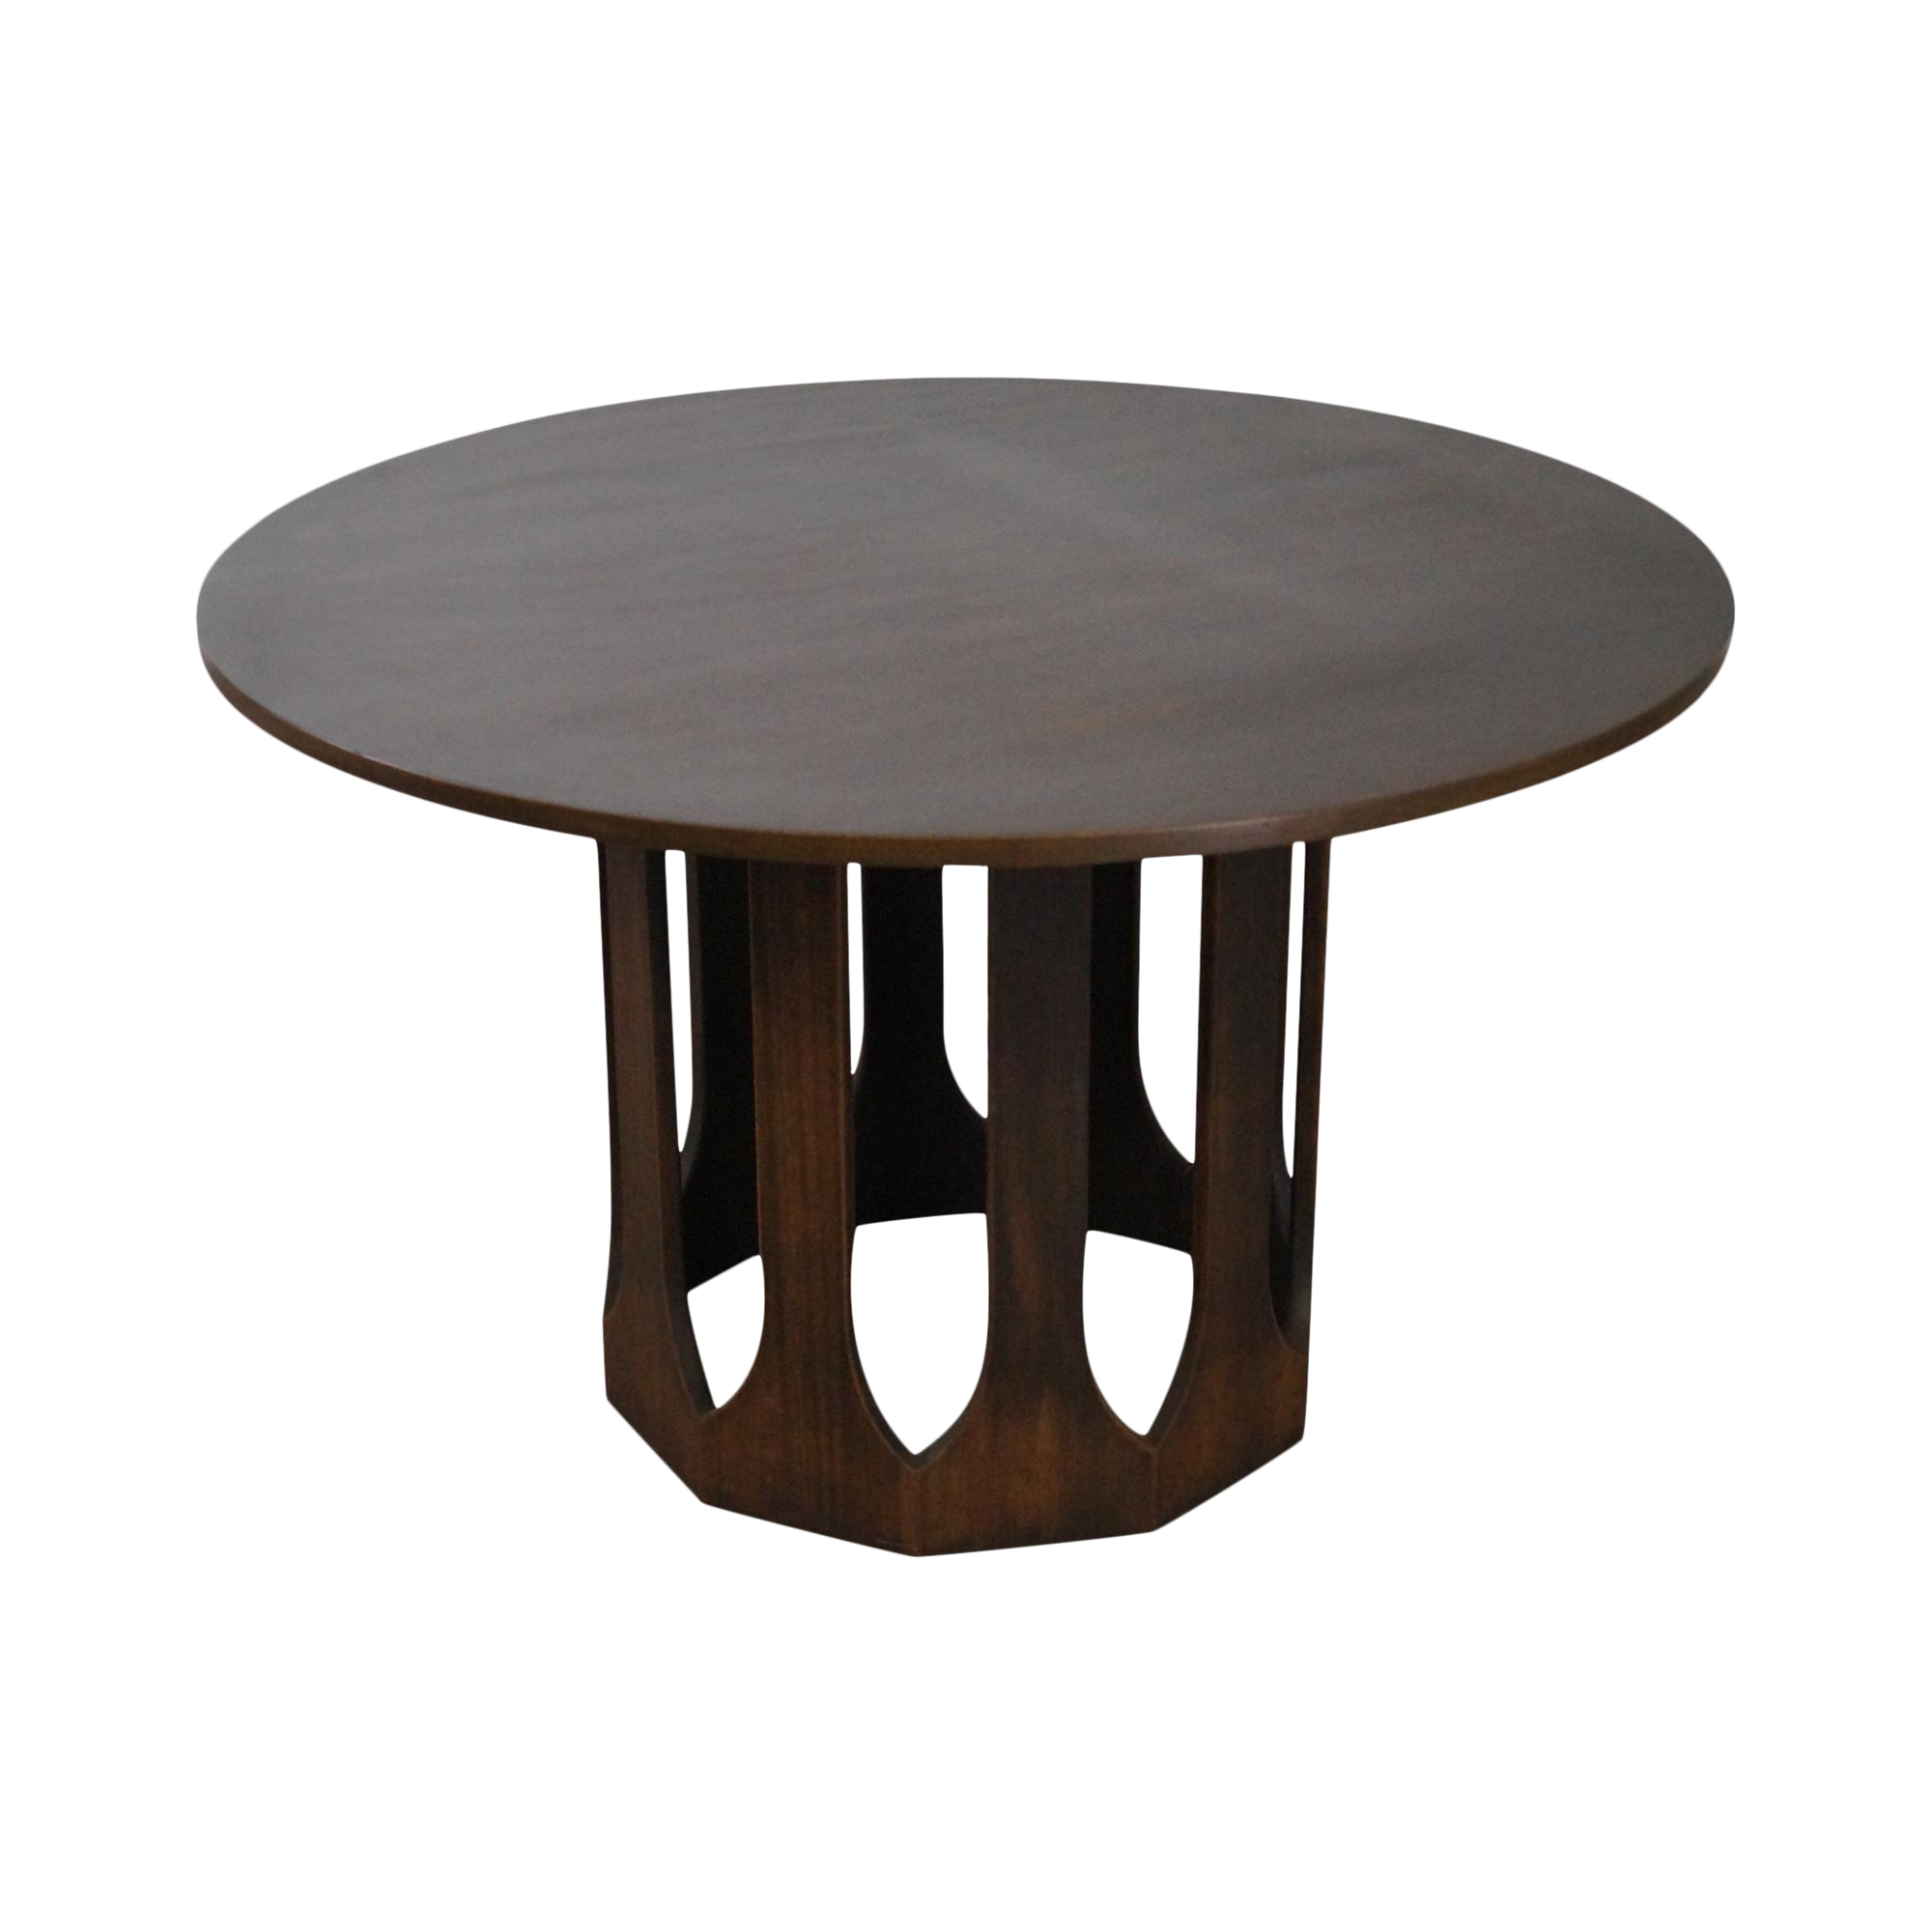 12ft Dining Table Images Best 25 Victorian Tables